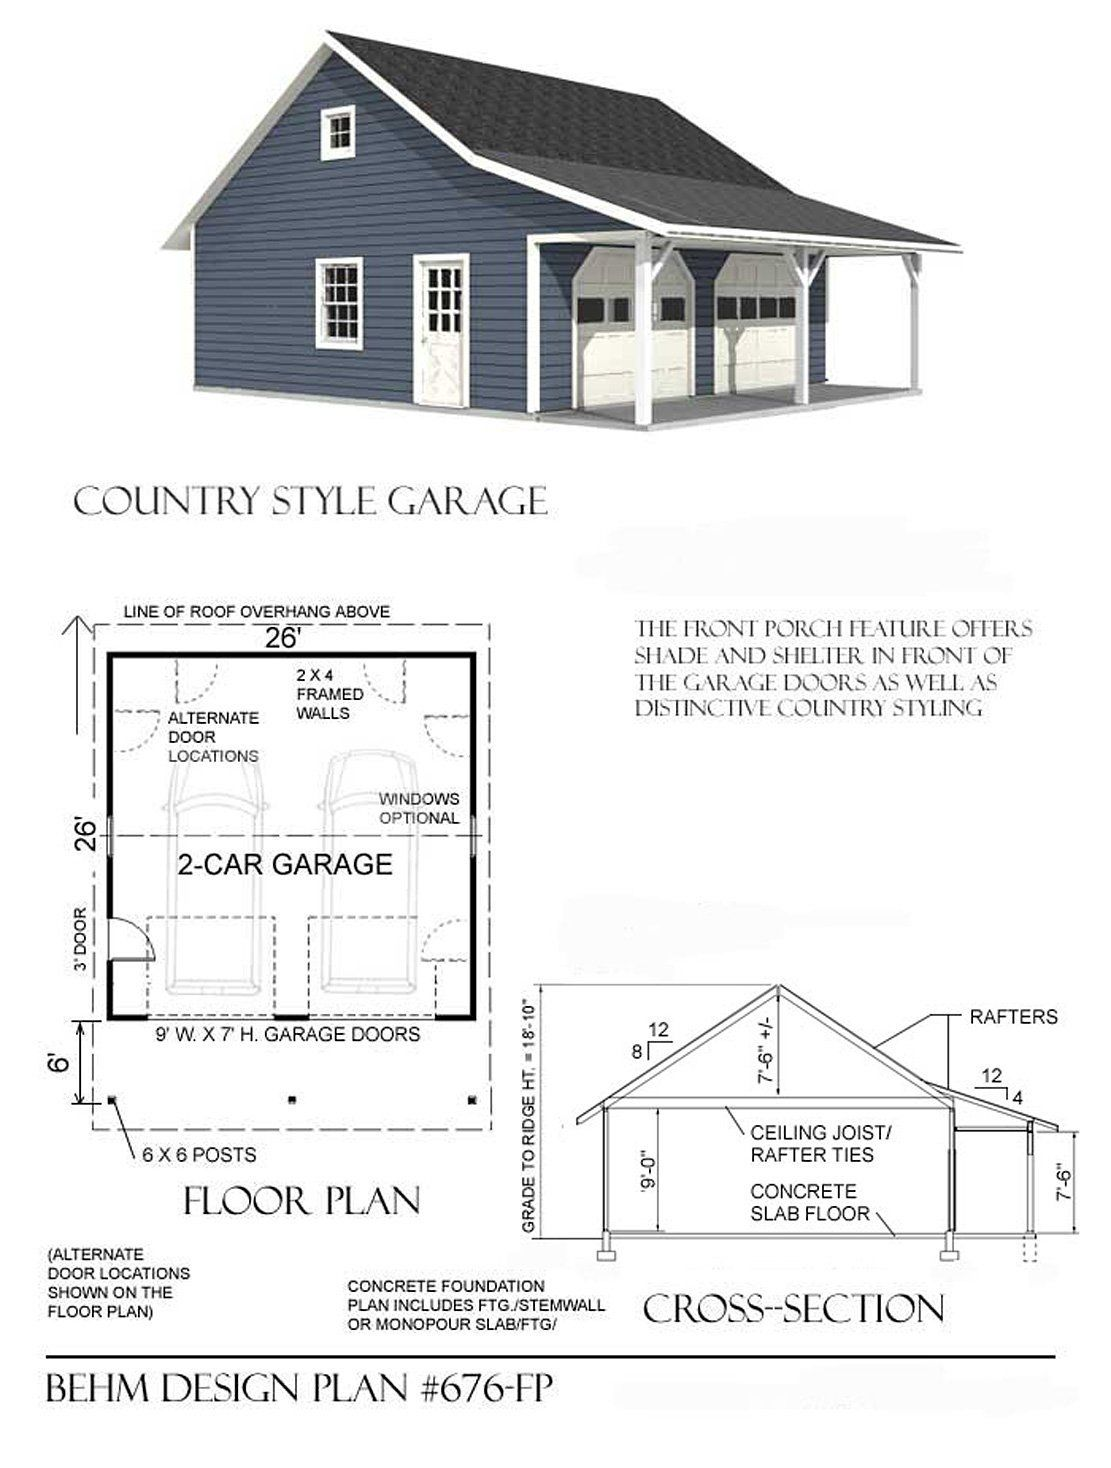 Garage Plans Roomy 2 Car Garage Plan With 6 Ft Front Porch 676 Fp 20 39 X 24 39 Two Car By Behm Garage Plans Garage Plans With Loft Garage Plan